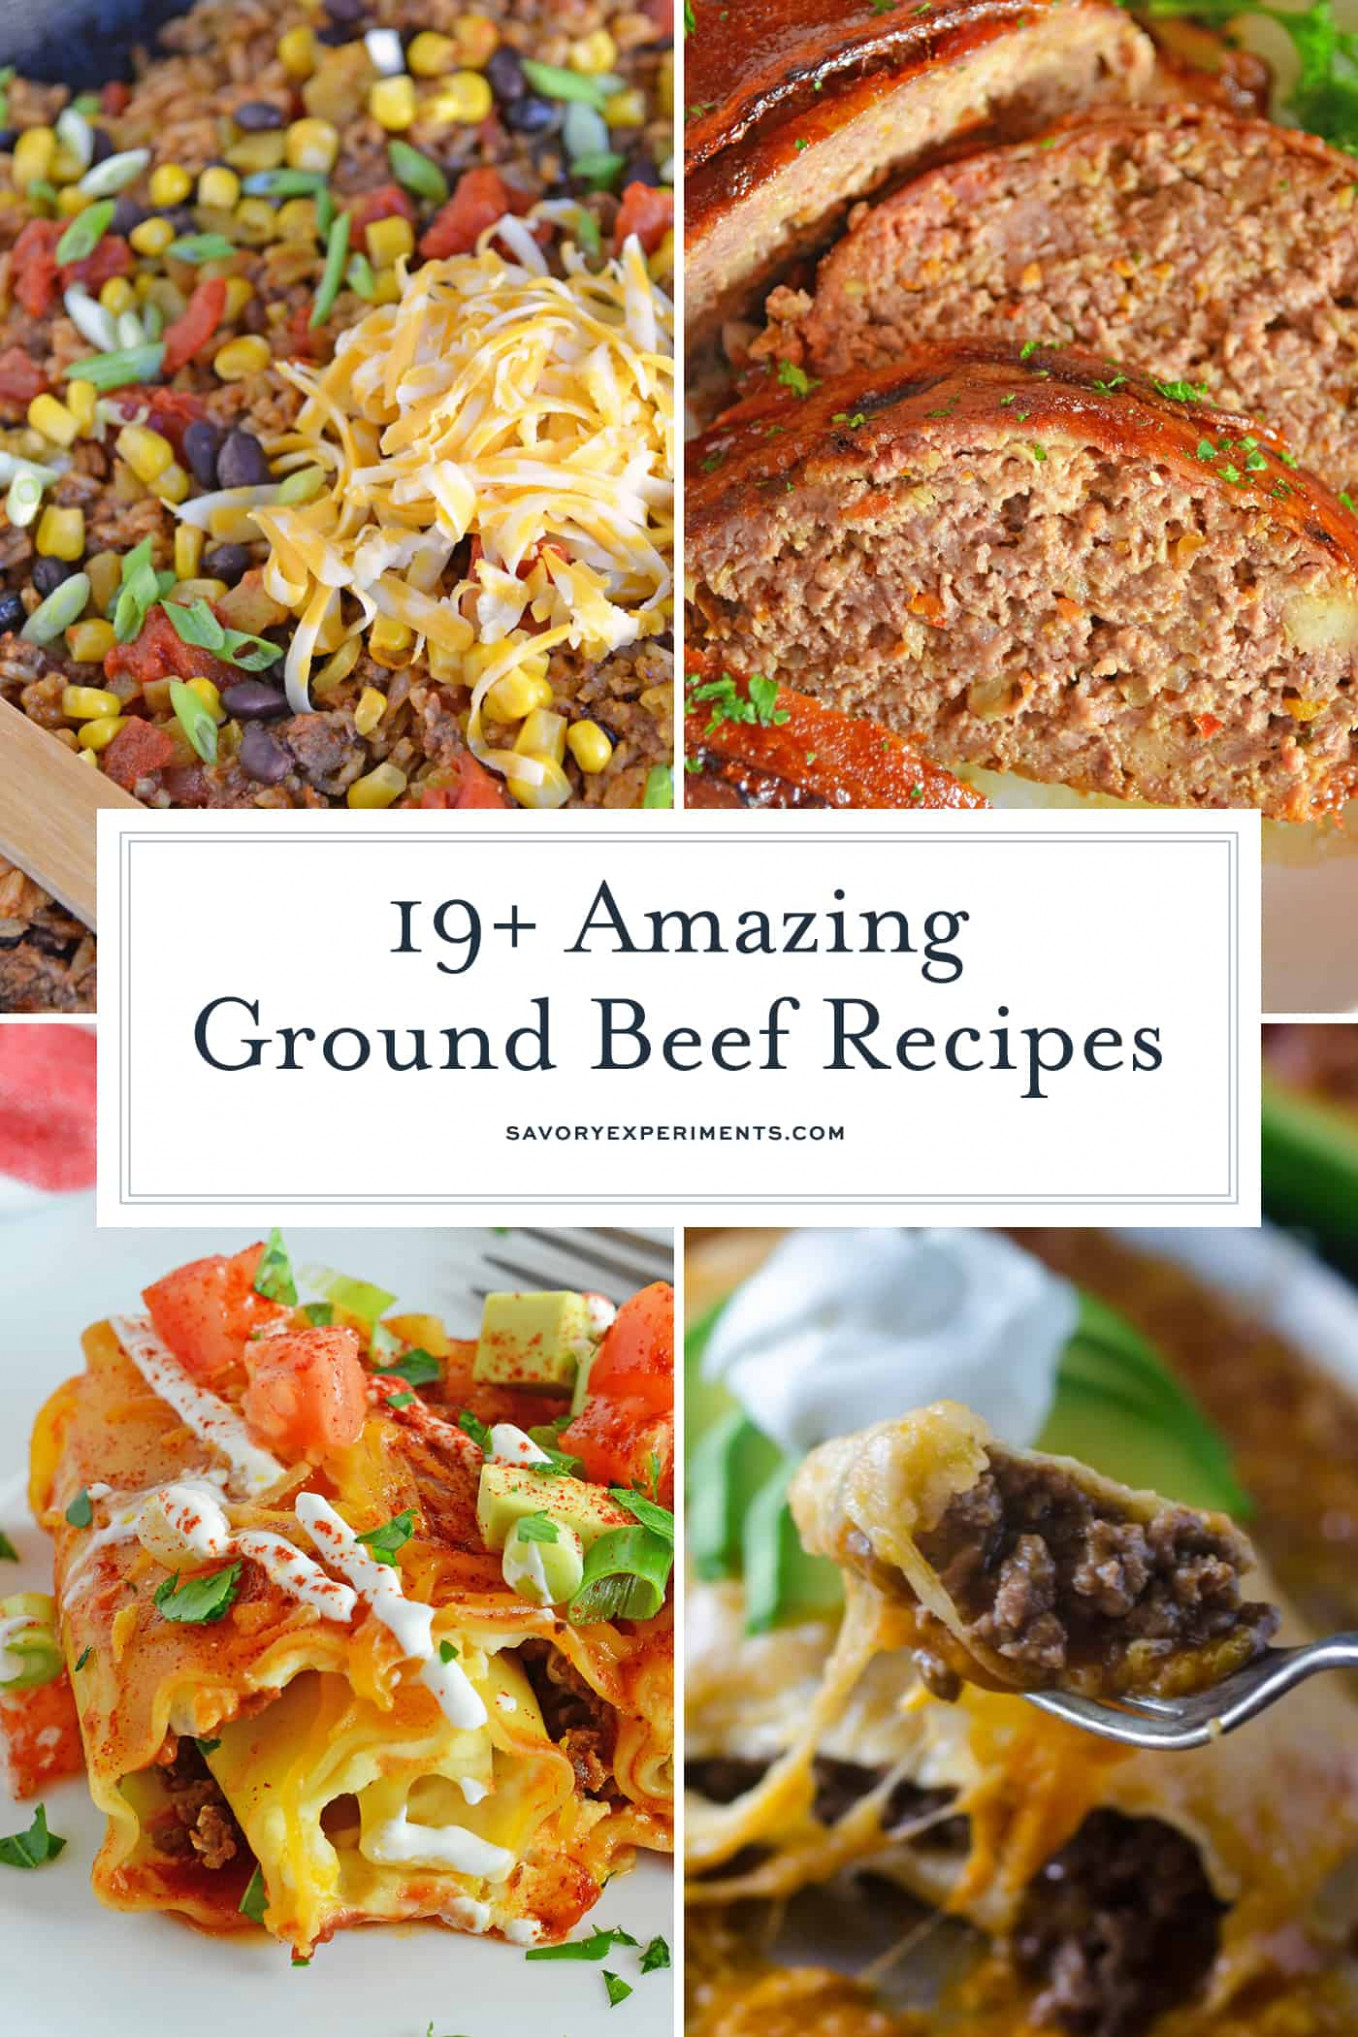 15 Amazing Ground Beef Recipes - Best Ground Beef Recipes - dinner recipes with ground beef